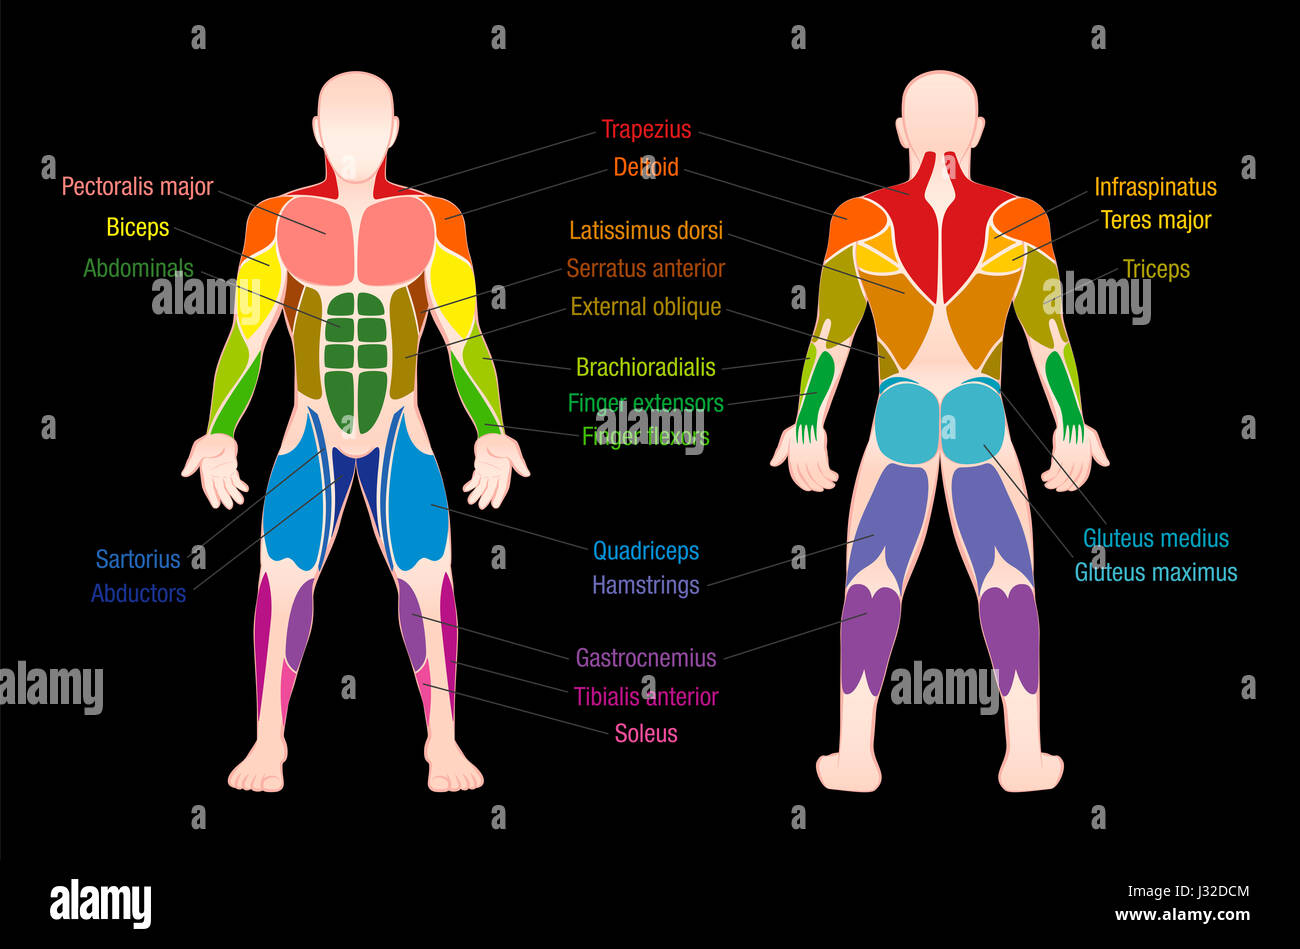 human muscles diagram labeled front and back 2002 gmc envoy stereo wiring muscle chart with most important of the body colored anterior posterior view illustration on black background